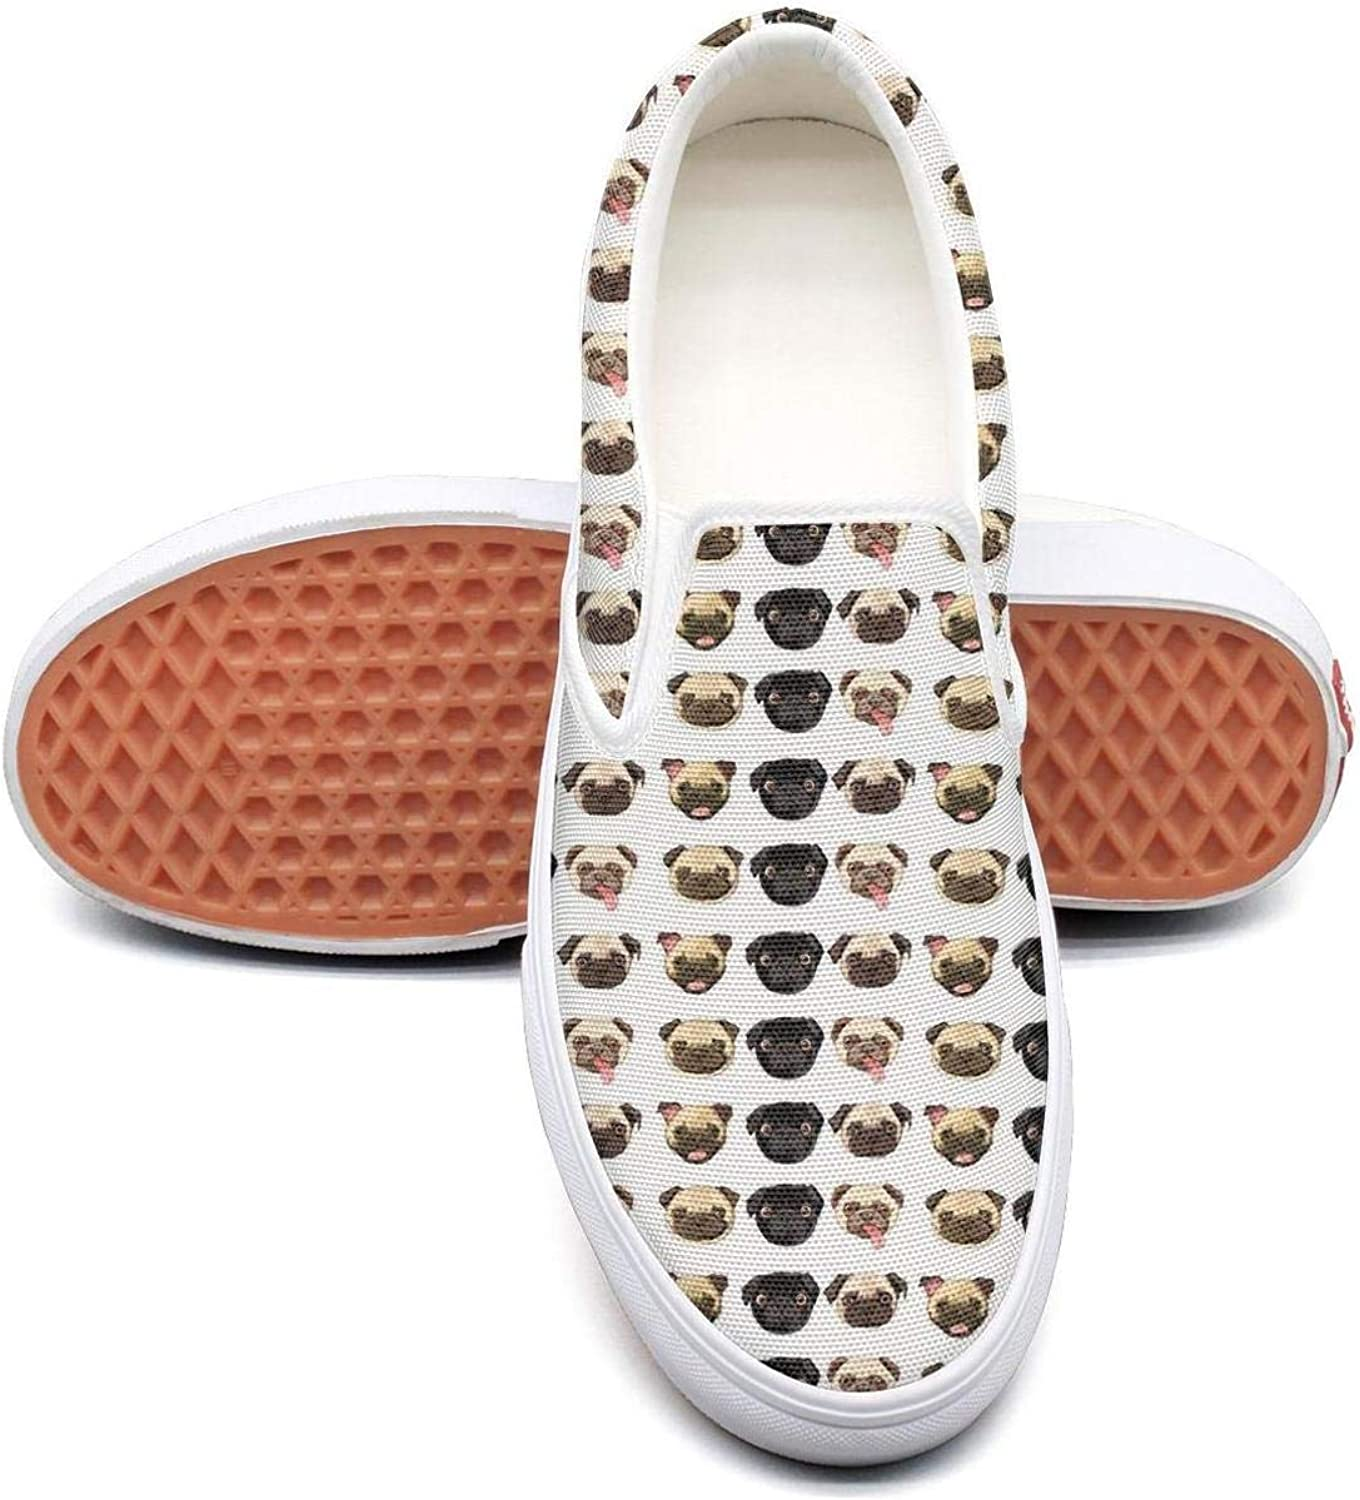 Cute Pug Dog Baby Womens Fashion Slip on Low Top Canvas Basketball shoes